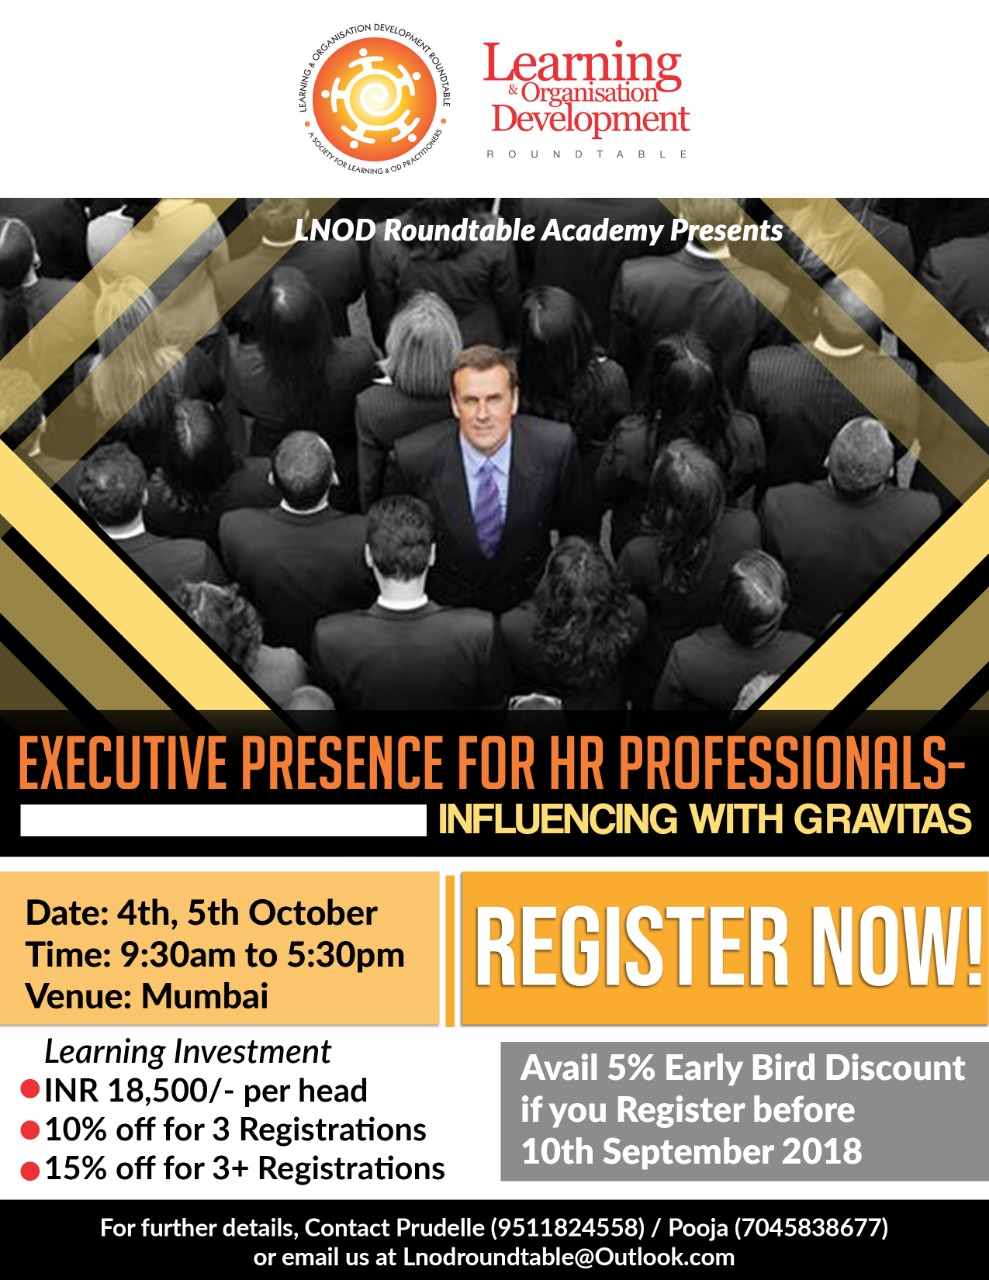 Executive Presence for HR Professionals